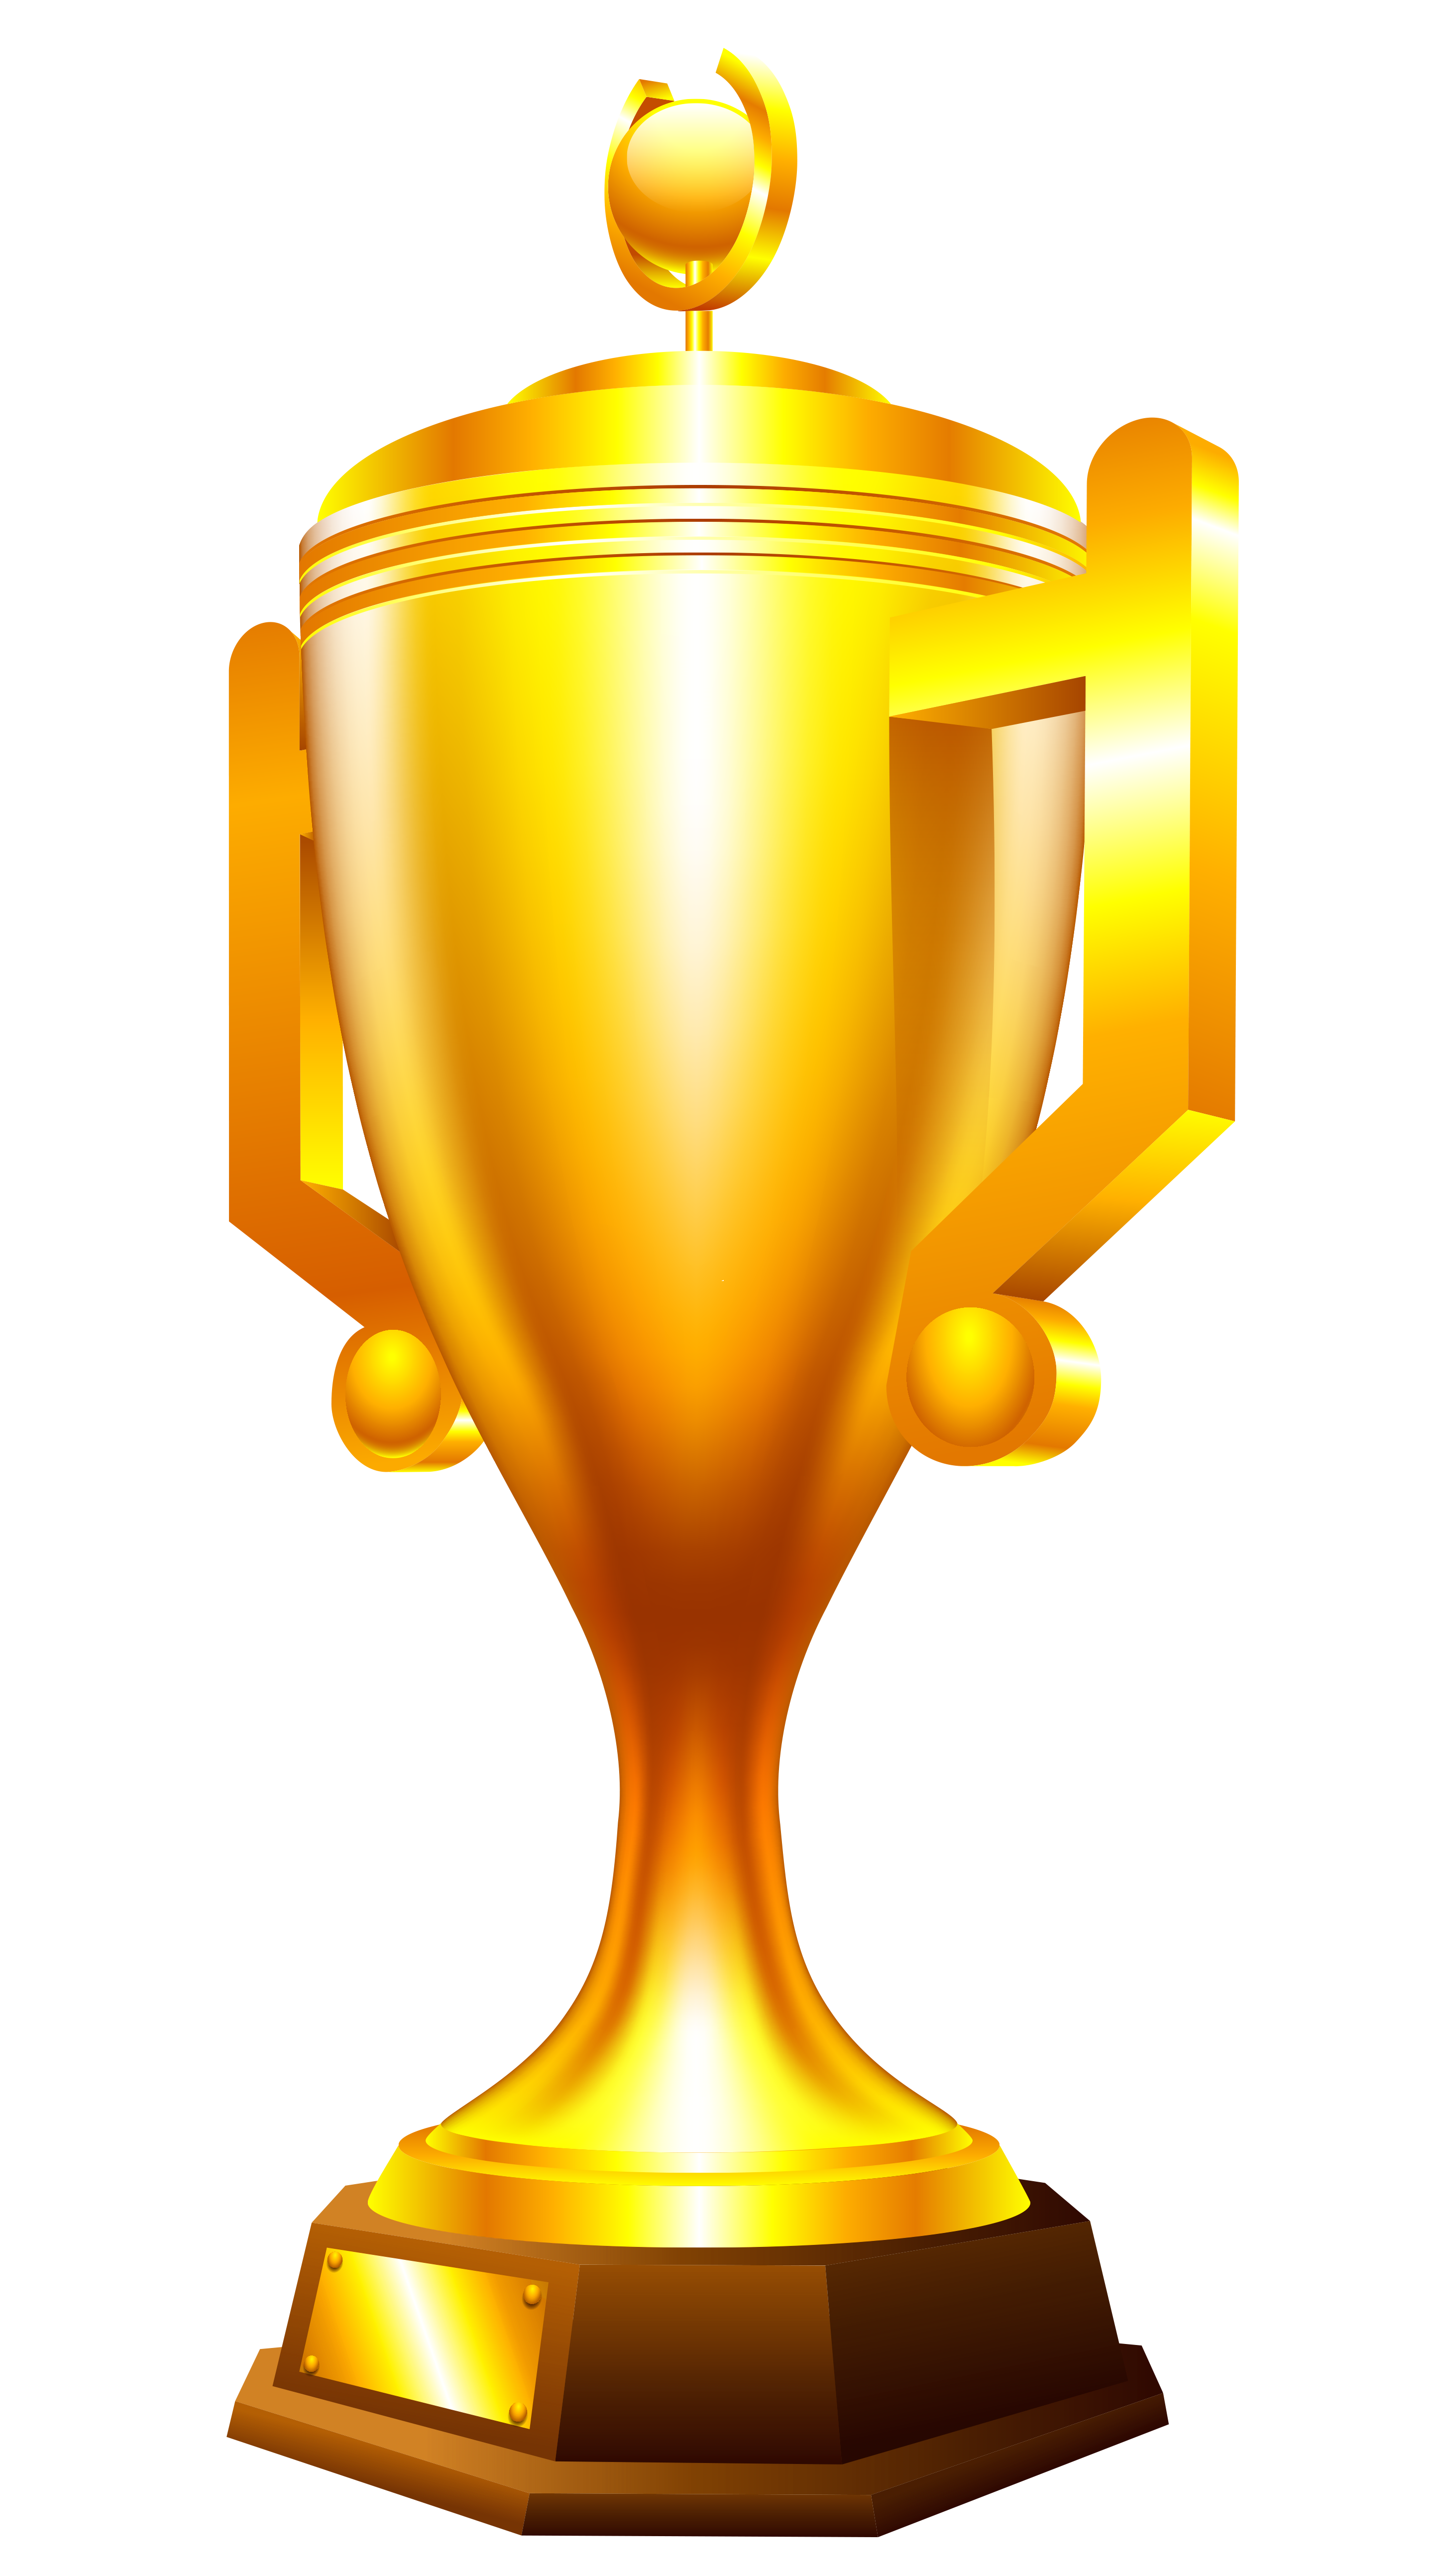 Gold Cup Trophy Png Image Football Cups Gold Cup Soccer Trophy